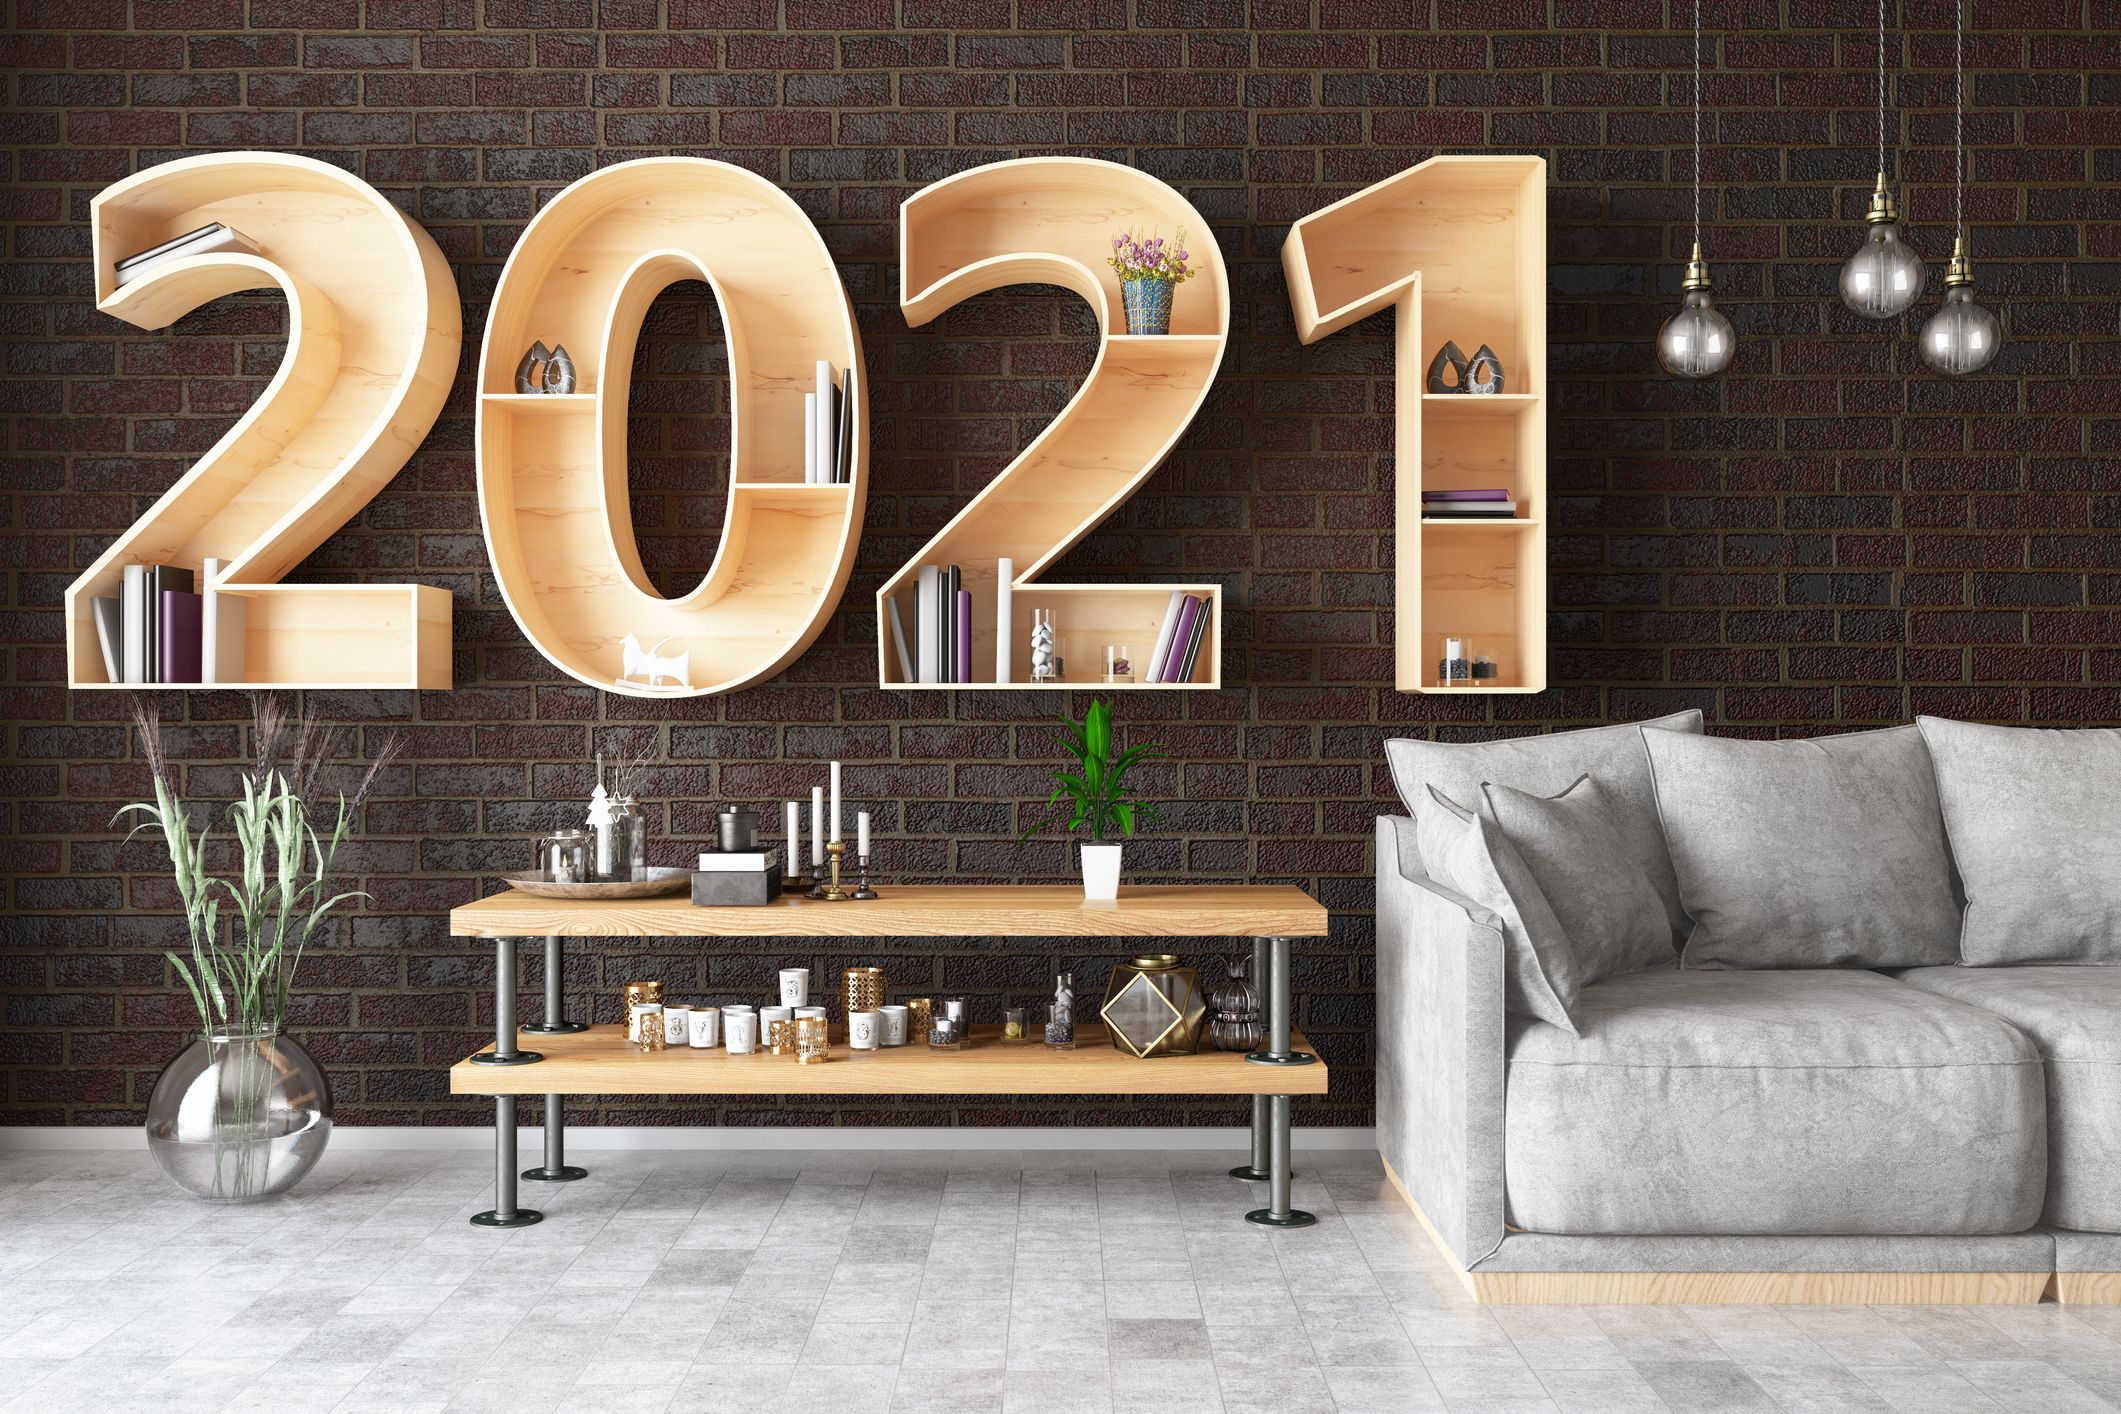 56 Best New Year's Resolution Ideas 2021 - Good New Resolutions